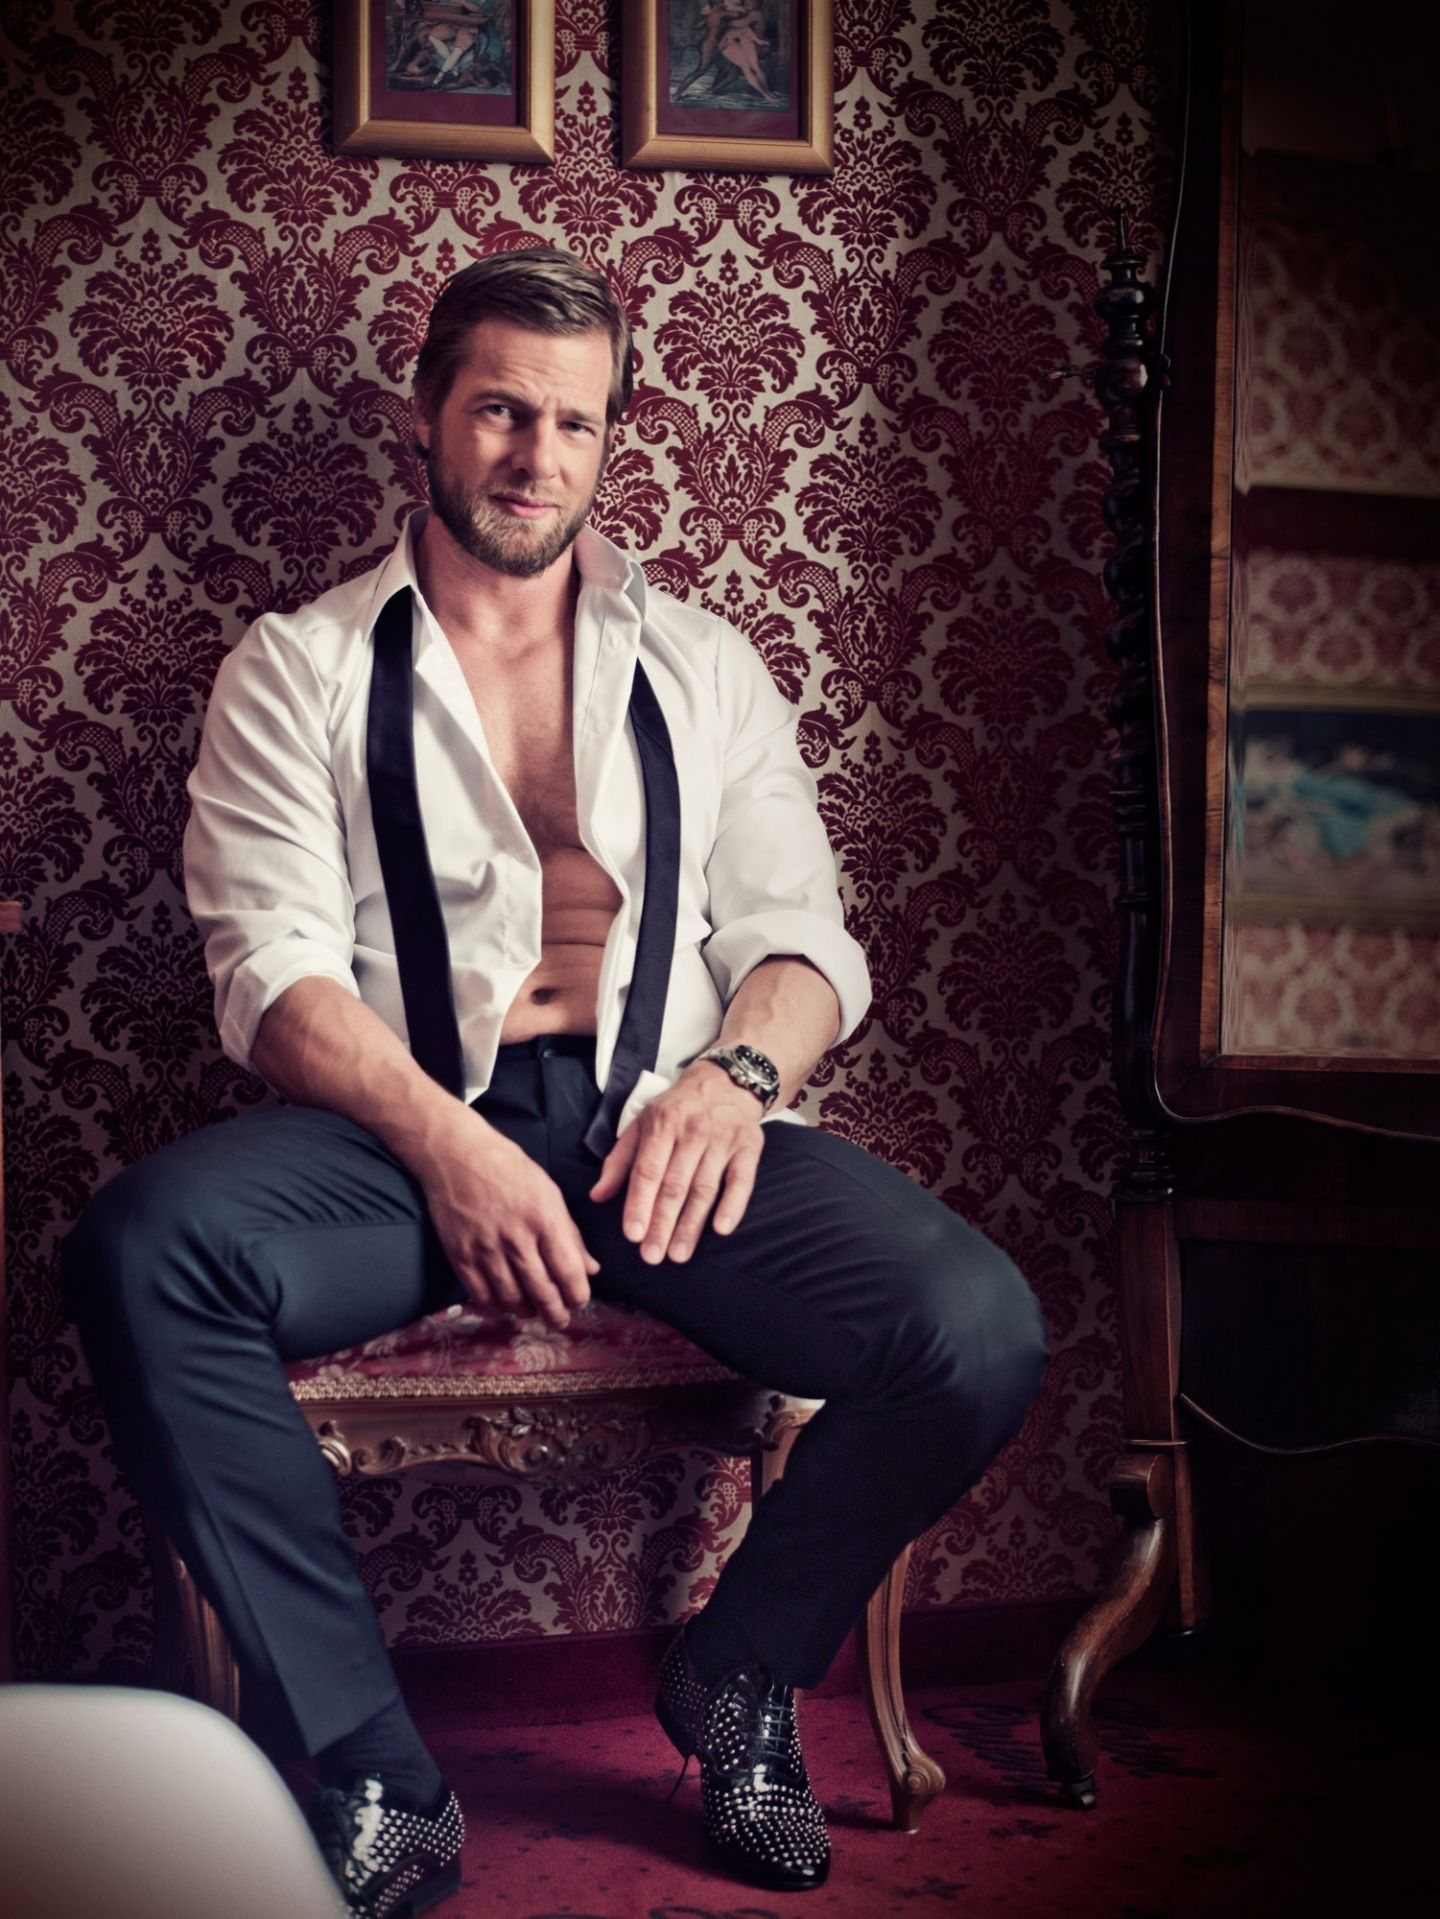 henning single men Meet thousands of local henning singles, as the worlds largest dating site we make dating in henning easy plentyoffish is 100% free, unlike paid dating sites.